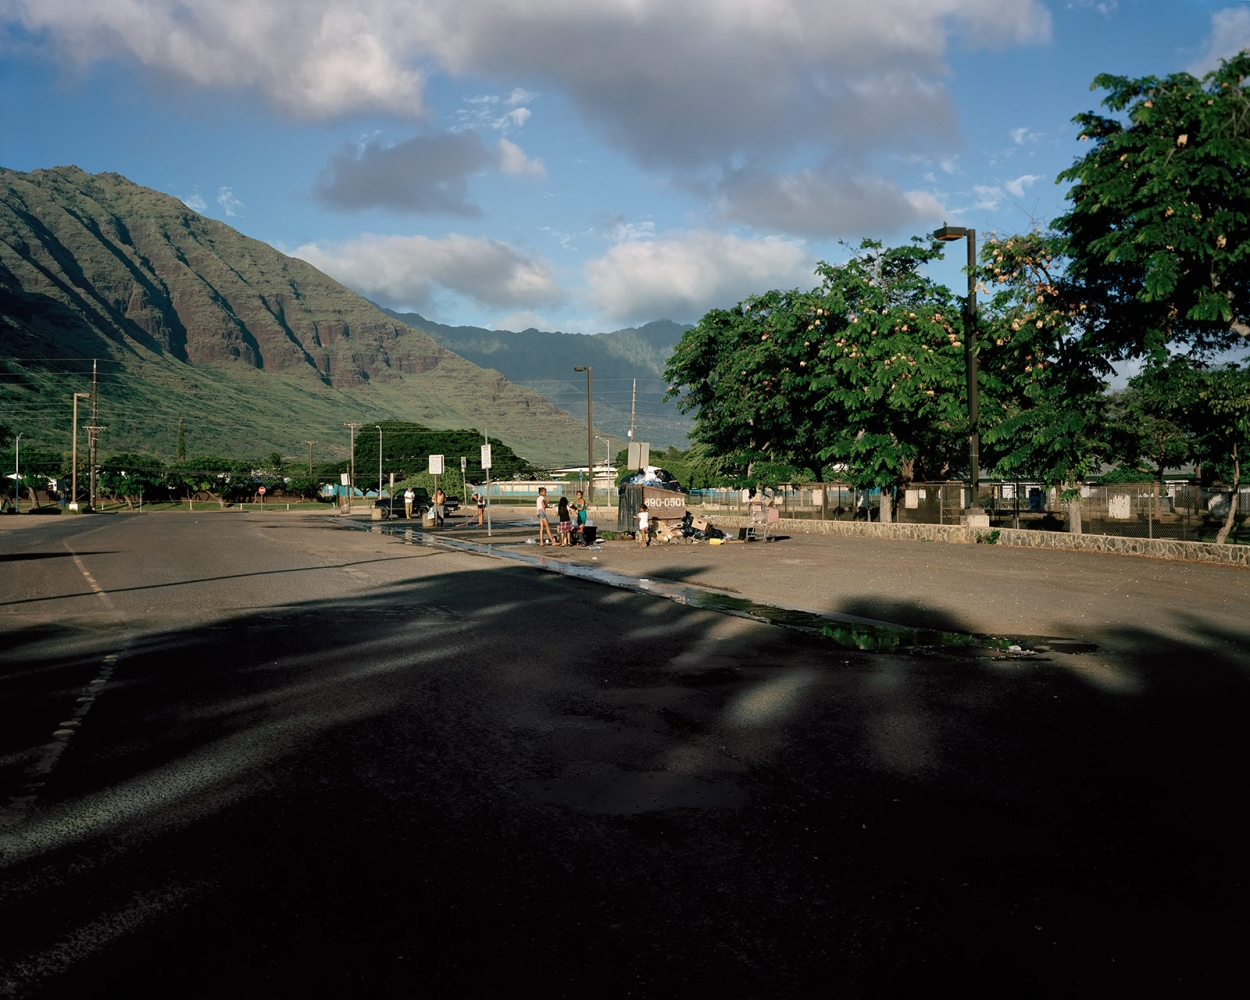 Parking Lot with Children, Hawaii 2014